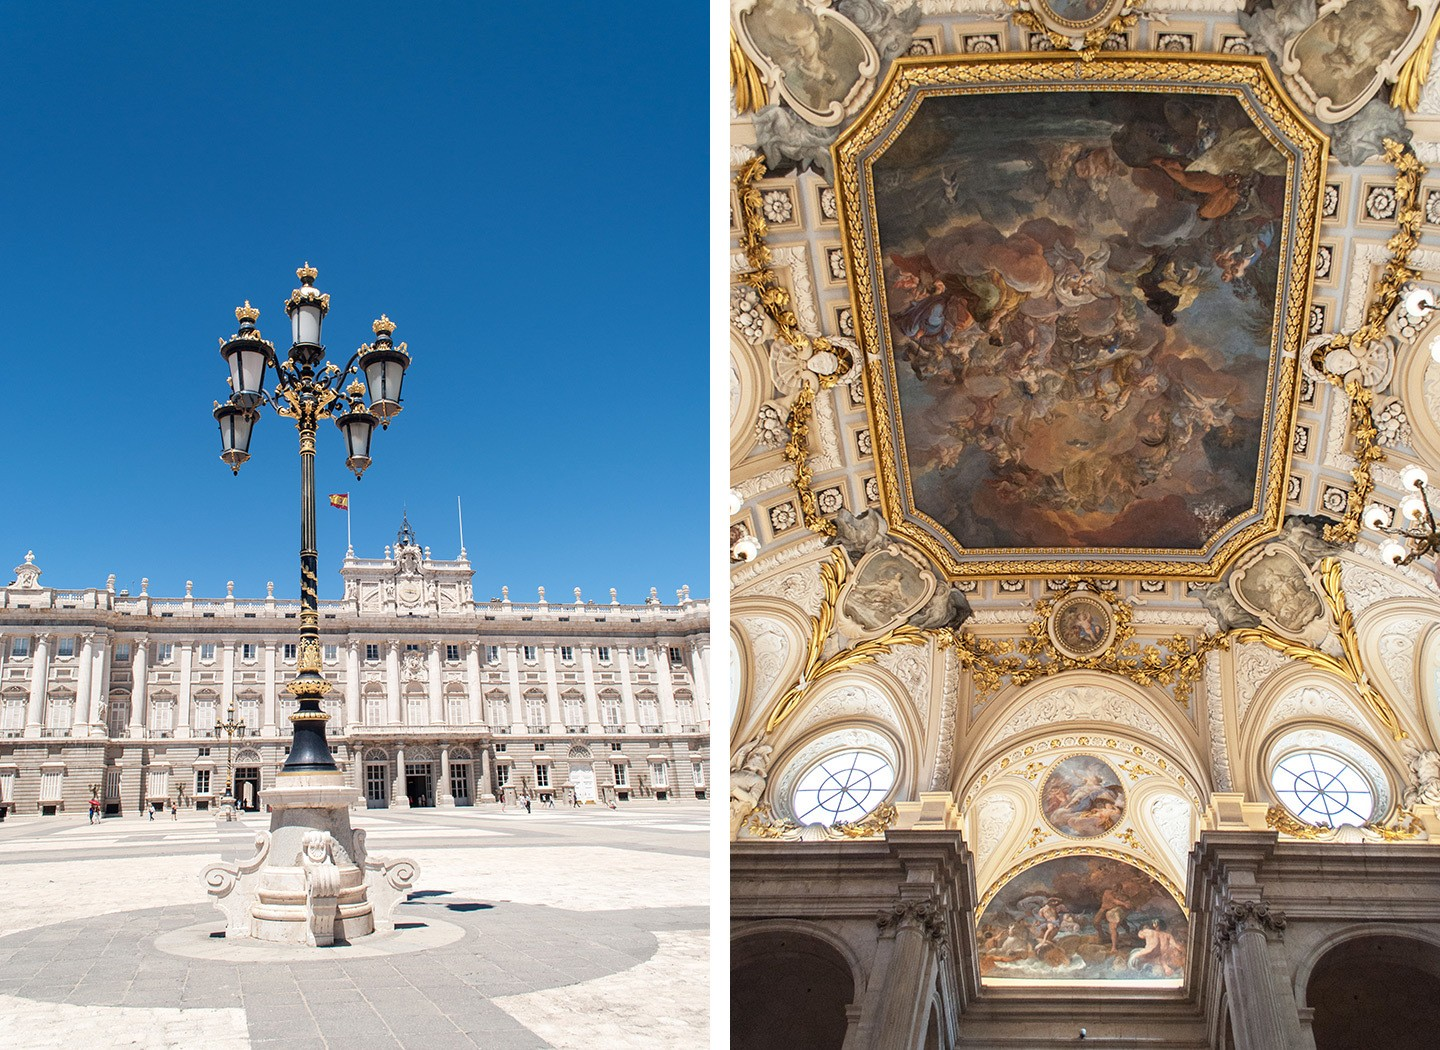 Inside and outside the Palacio Real, Madrid